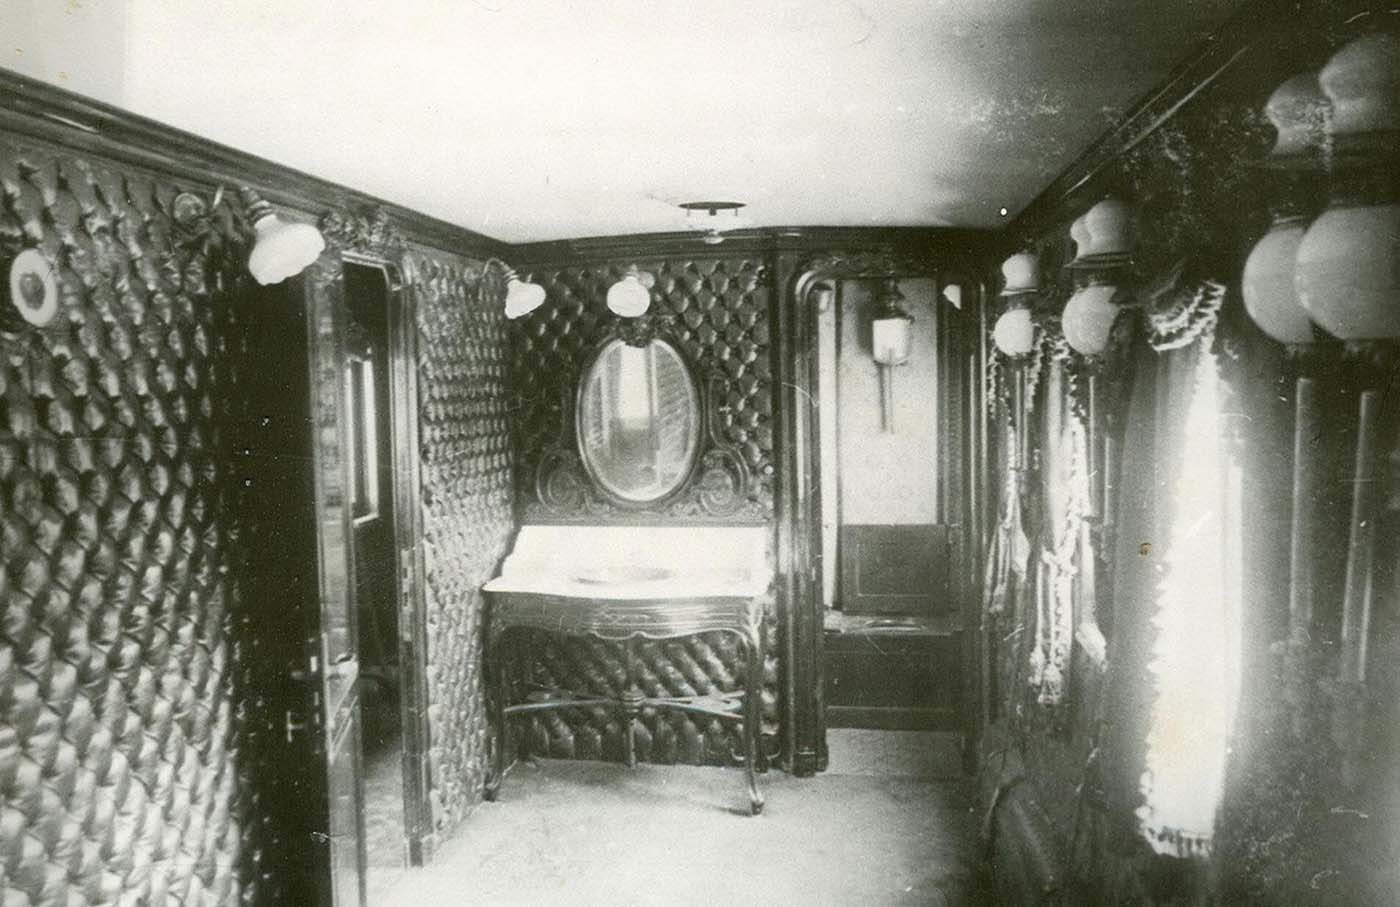 Interior view of one of the carriages.